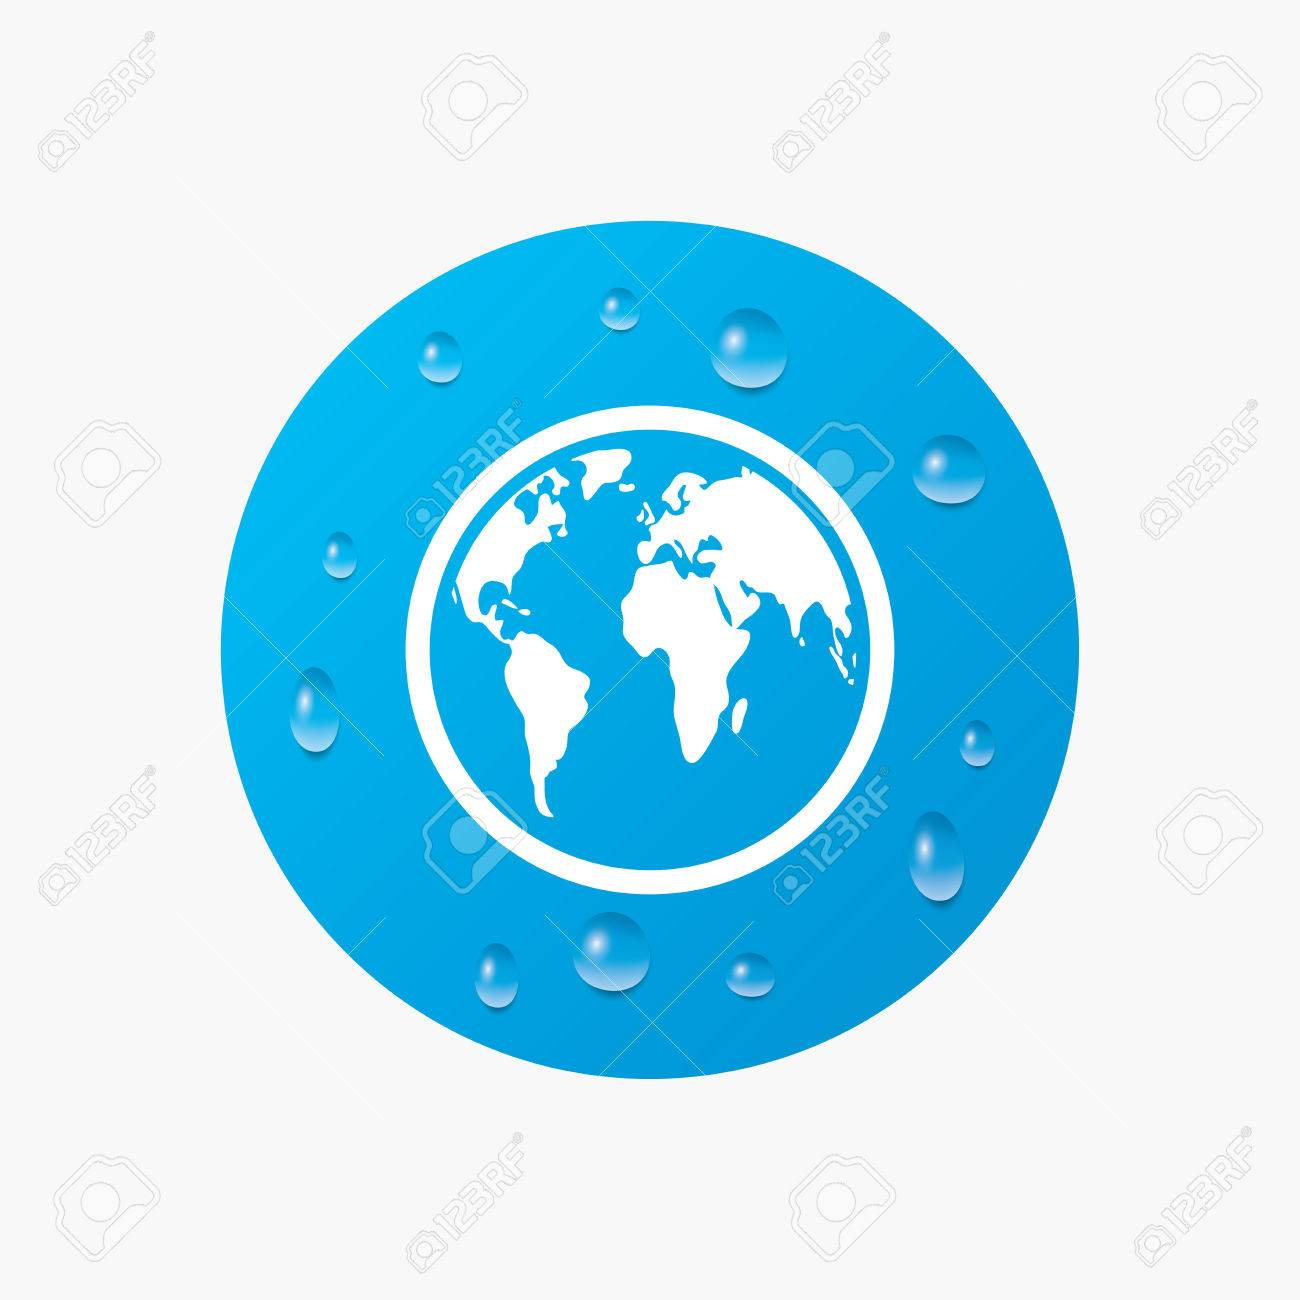 Water drops on button globe sign icon world map geography symbol globe sign icon world map geography symbol realistic pure gumiabroncs Gallery